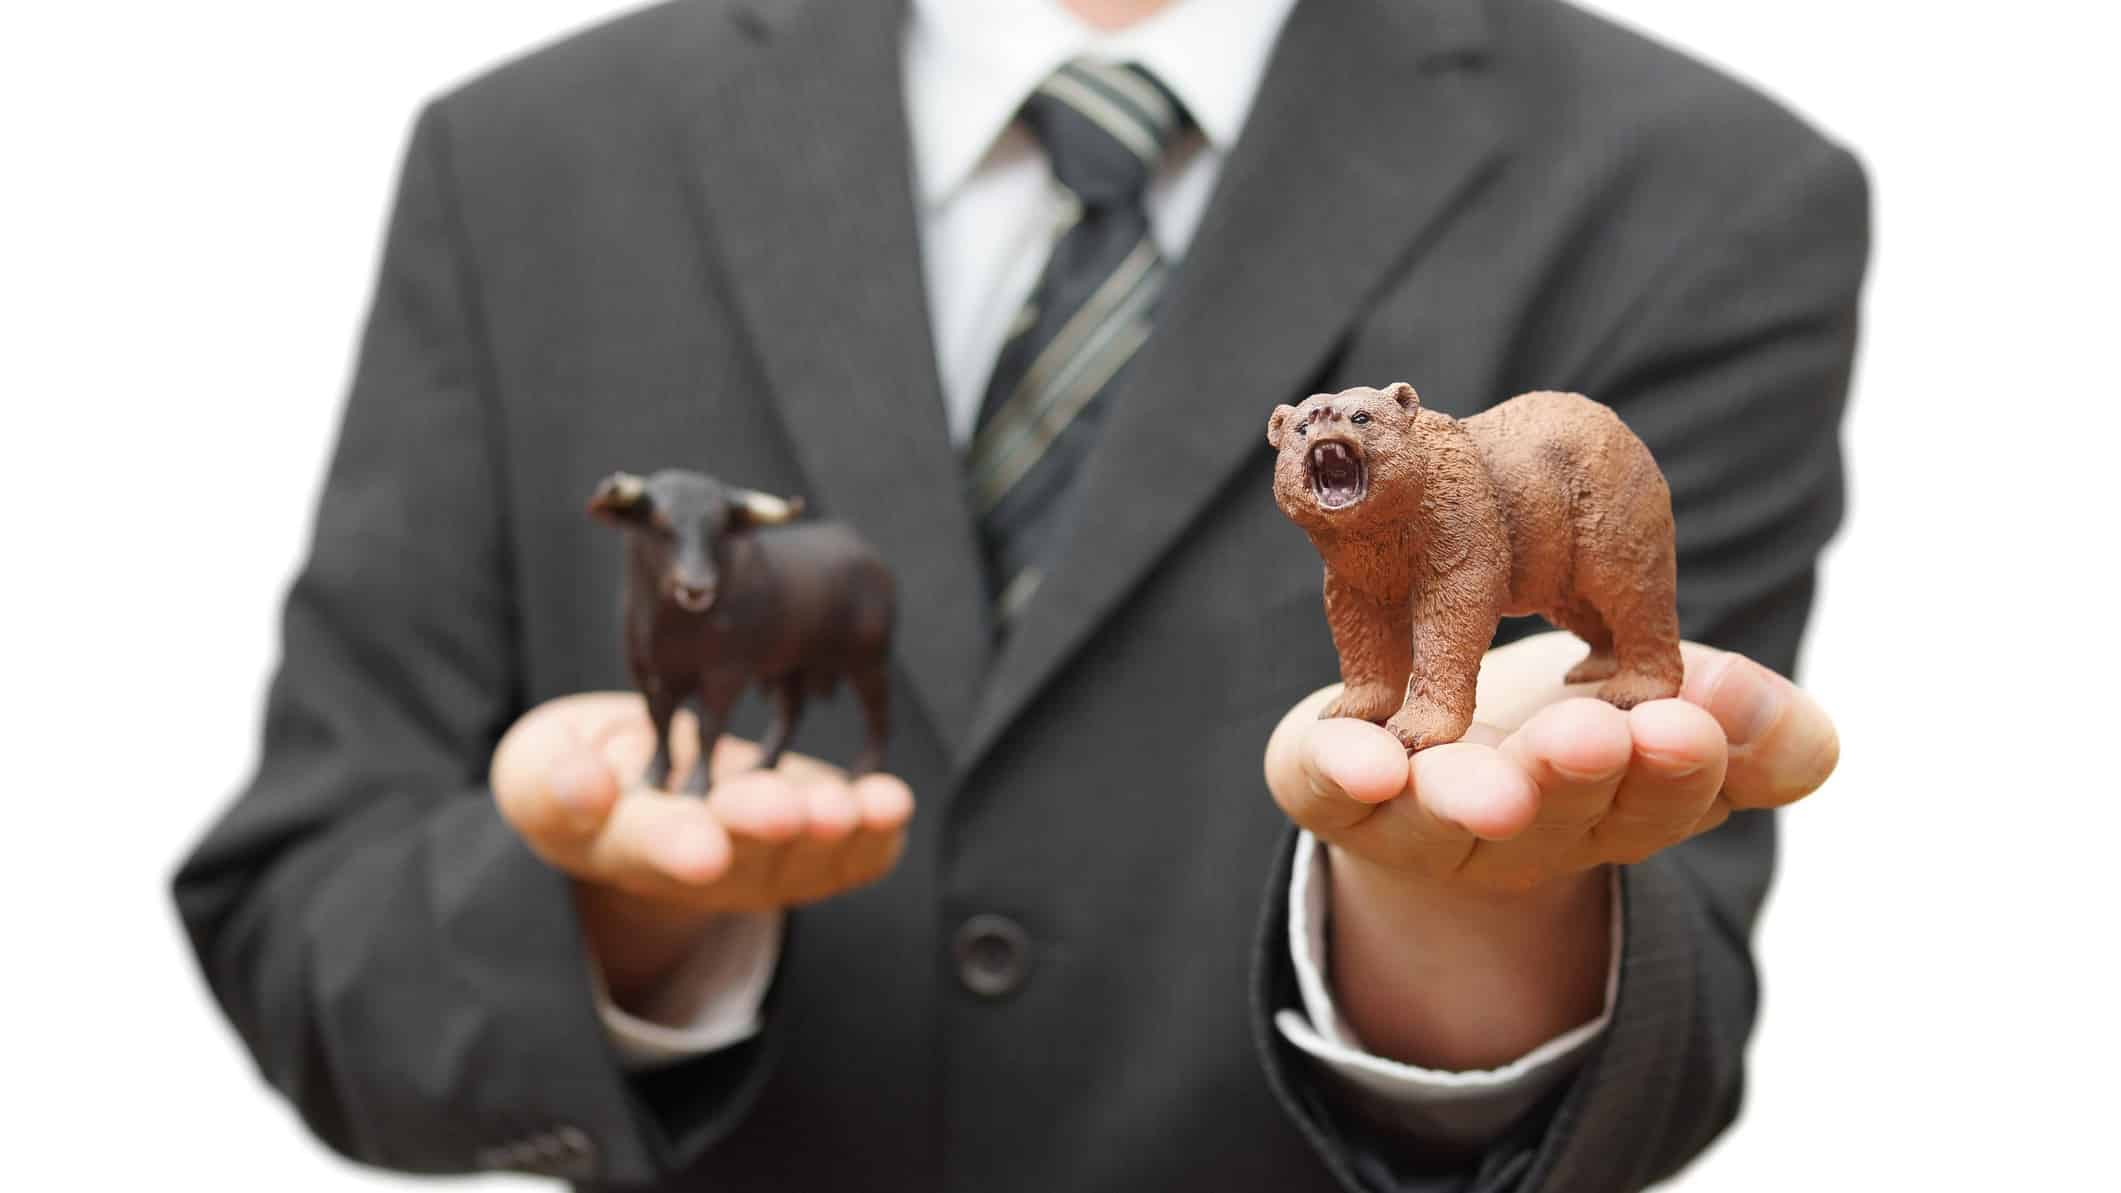 Businessman holding bear figurine in one palm and bull figurine in other